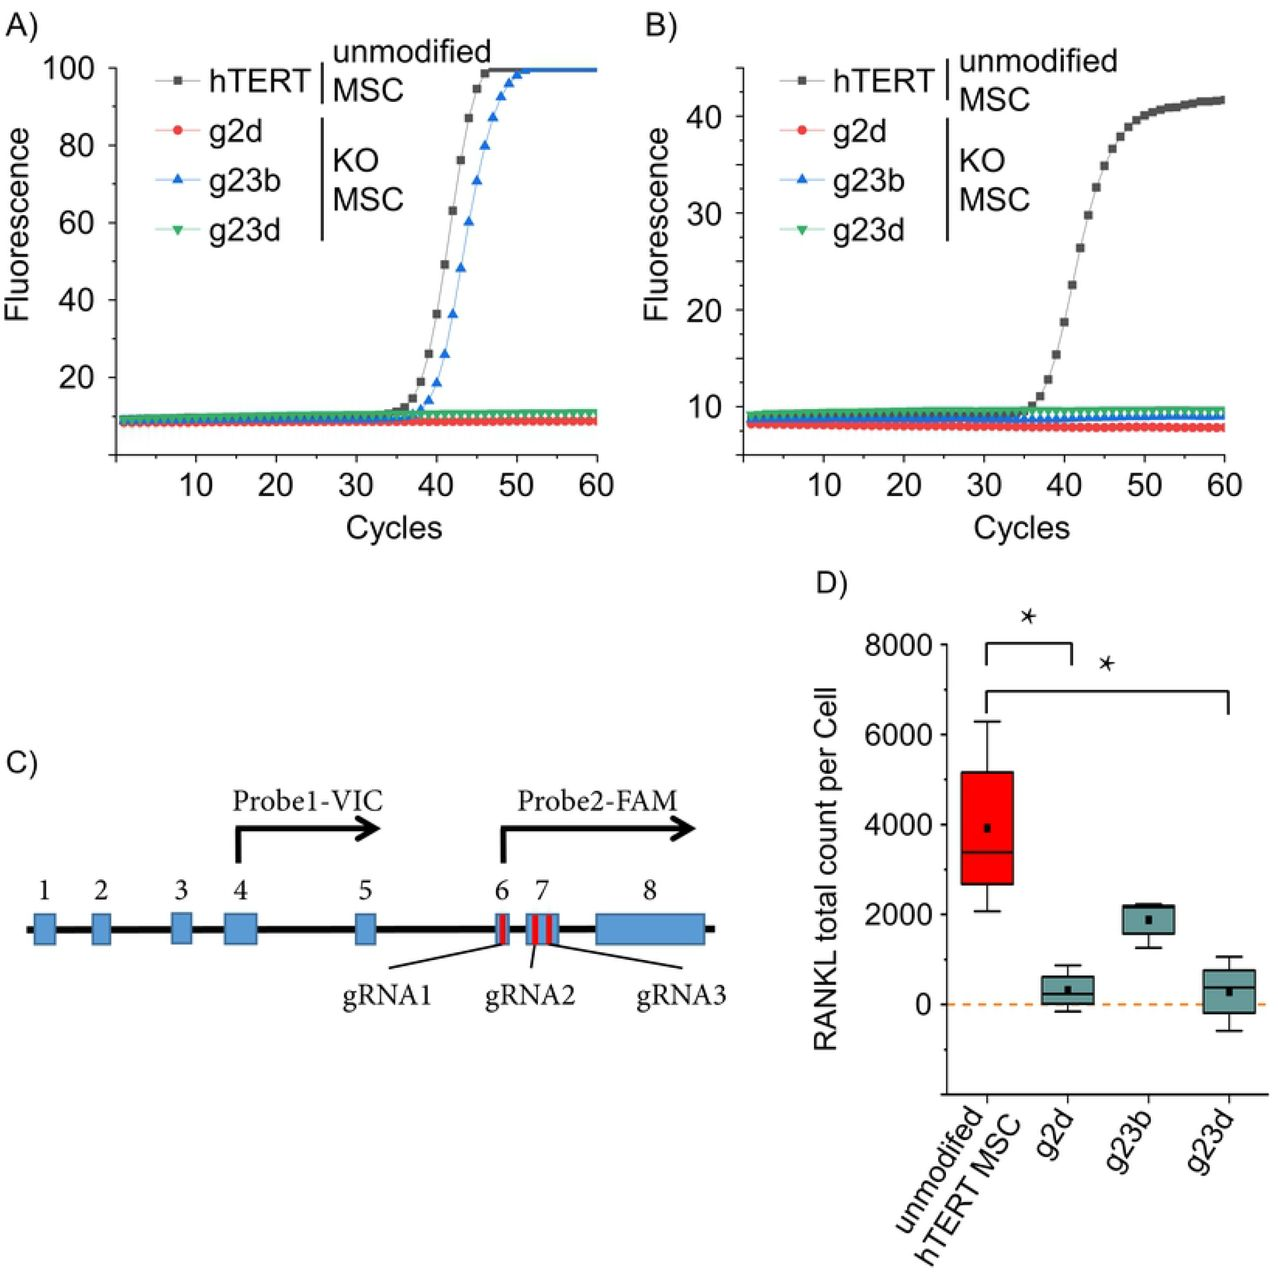 Quantitative measurement of TNFSF11 RNA and RANKL protein. TNFSF11 transcription was assessed by two qPCRs upstream (A) and downstream (B) of the gRNAs target sites. hTERT MSC and the TNFSF11 knockout clones g2d, g23b and g23d were analyzed (n=3, representative runs are displayed). Upstream reaction was positive for hTERT MSCs and g23b, while downstream reaction was positive only for hTERT MSCs. (C) Schematic presentation of the major splice variant of TNFSF11 . Blue boxes represent exons, red bars indicate the target site of the CRISPR/Cas9 gRNAs and black arrows symbolize the TaqMan probes with the respective fluorophore. (D) Protein expression was measured using emulsion coupling. RANKL-positive hTERT MSCs applied as positive control and 3 different RANKL KO hTERT MSCs were analyzed. The results are in the absolute counts of detected RANKL proteins. The values were normalized against control reaction without interaction (ABC) (red = positive control, cyan = samples); boxes represent the interquartile range (IQR; first to third quartiles); whiskers are 1.5× IQR; horizontal mid-line, median; dot, mean. Statistical significance is indicated: Kolmogorov-Smirnov-test (n = 3) *P ¡ 0.05; zero level means no RANKL protein detected.